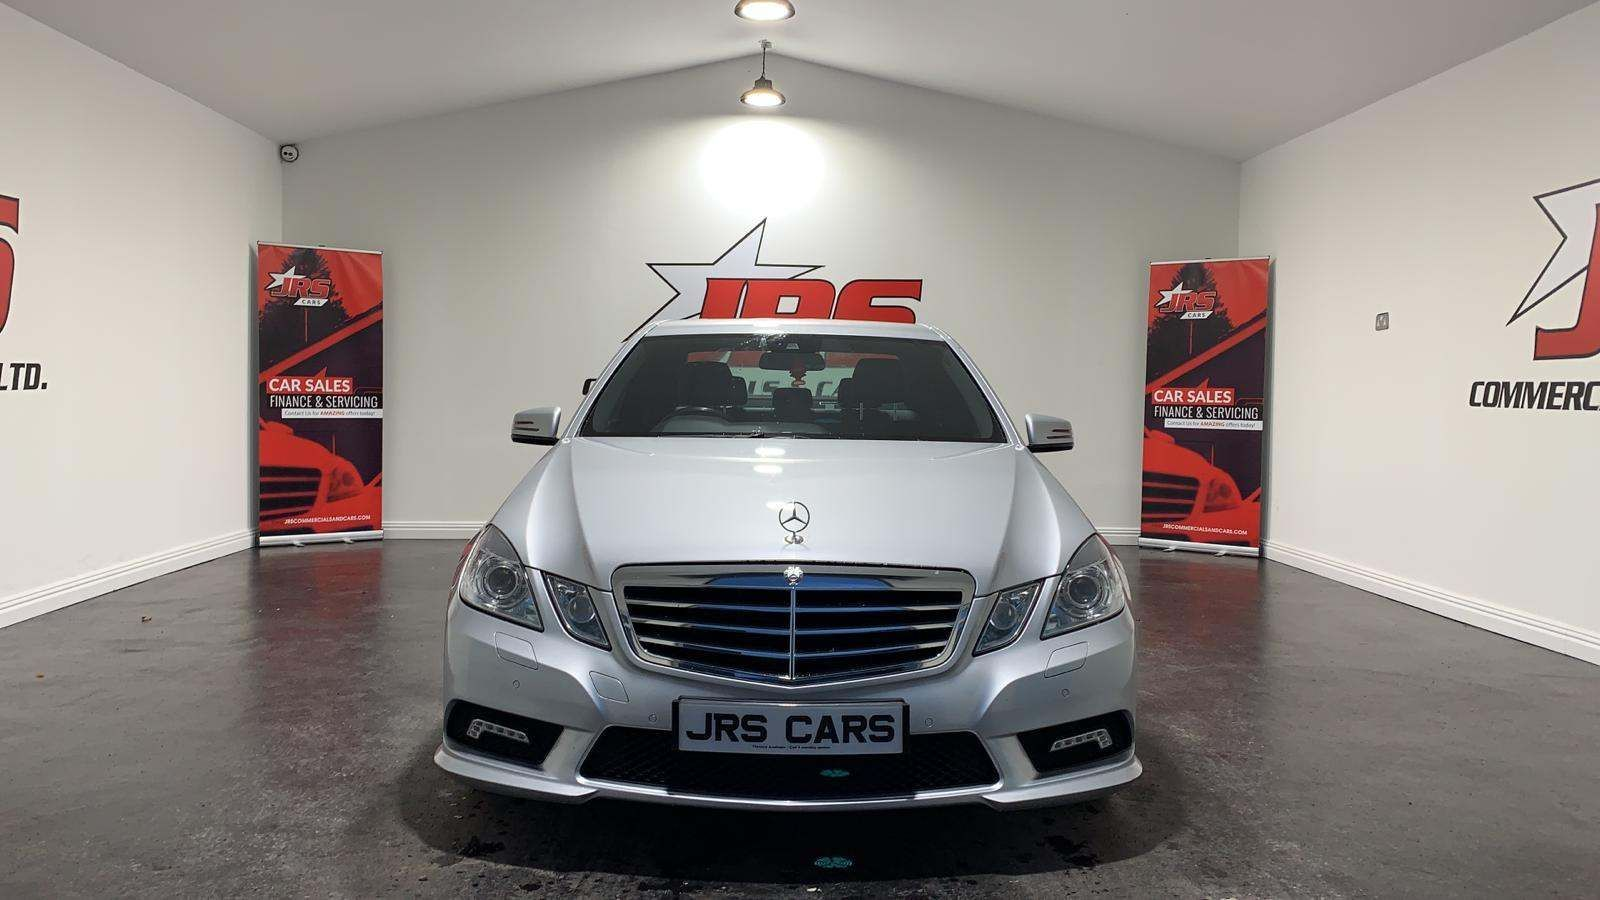 2011 MERCEDES BENZ E Class 3.0 E350 CDI Sport Diesel Automatic Black Leather – Heated Seats – J R S Commercials And Cars Dungannon full